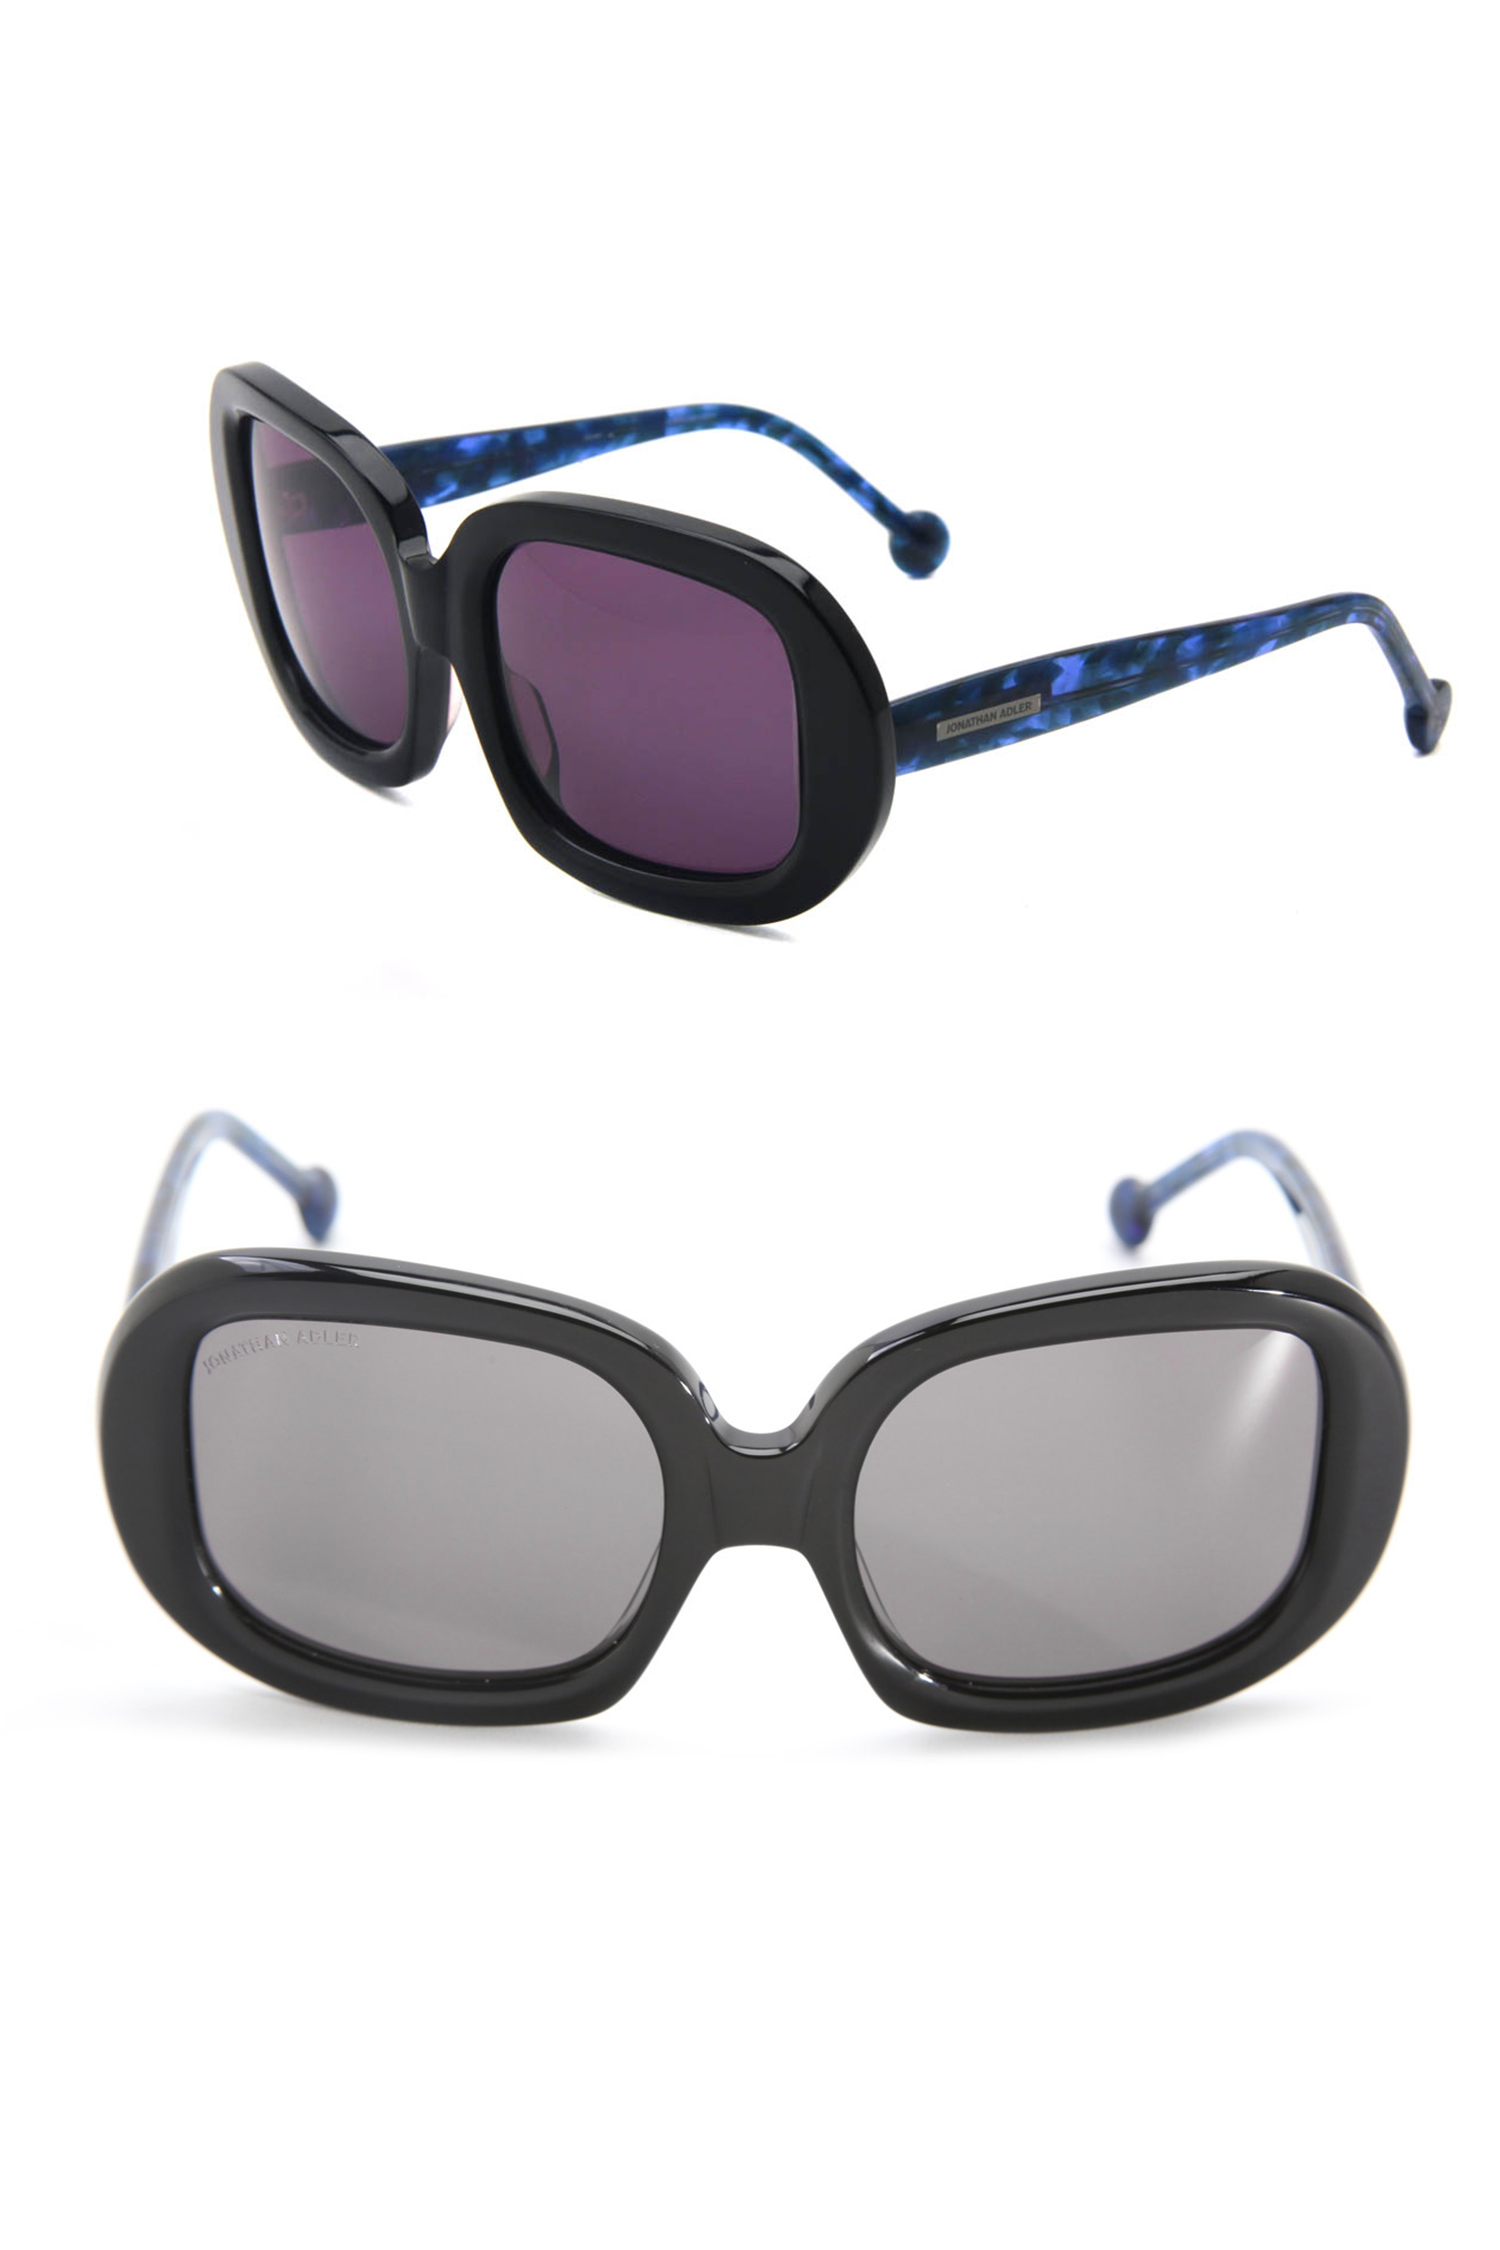 Glasses Frames Square Face : 10 Best Sunglasses for Face Shape - Round Face & Square ...